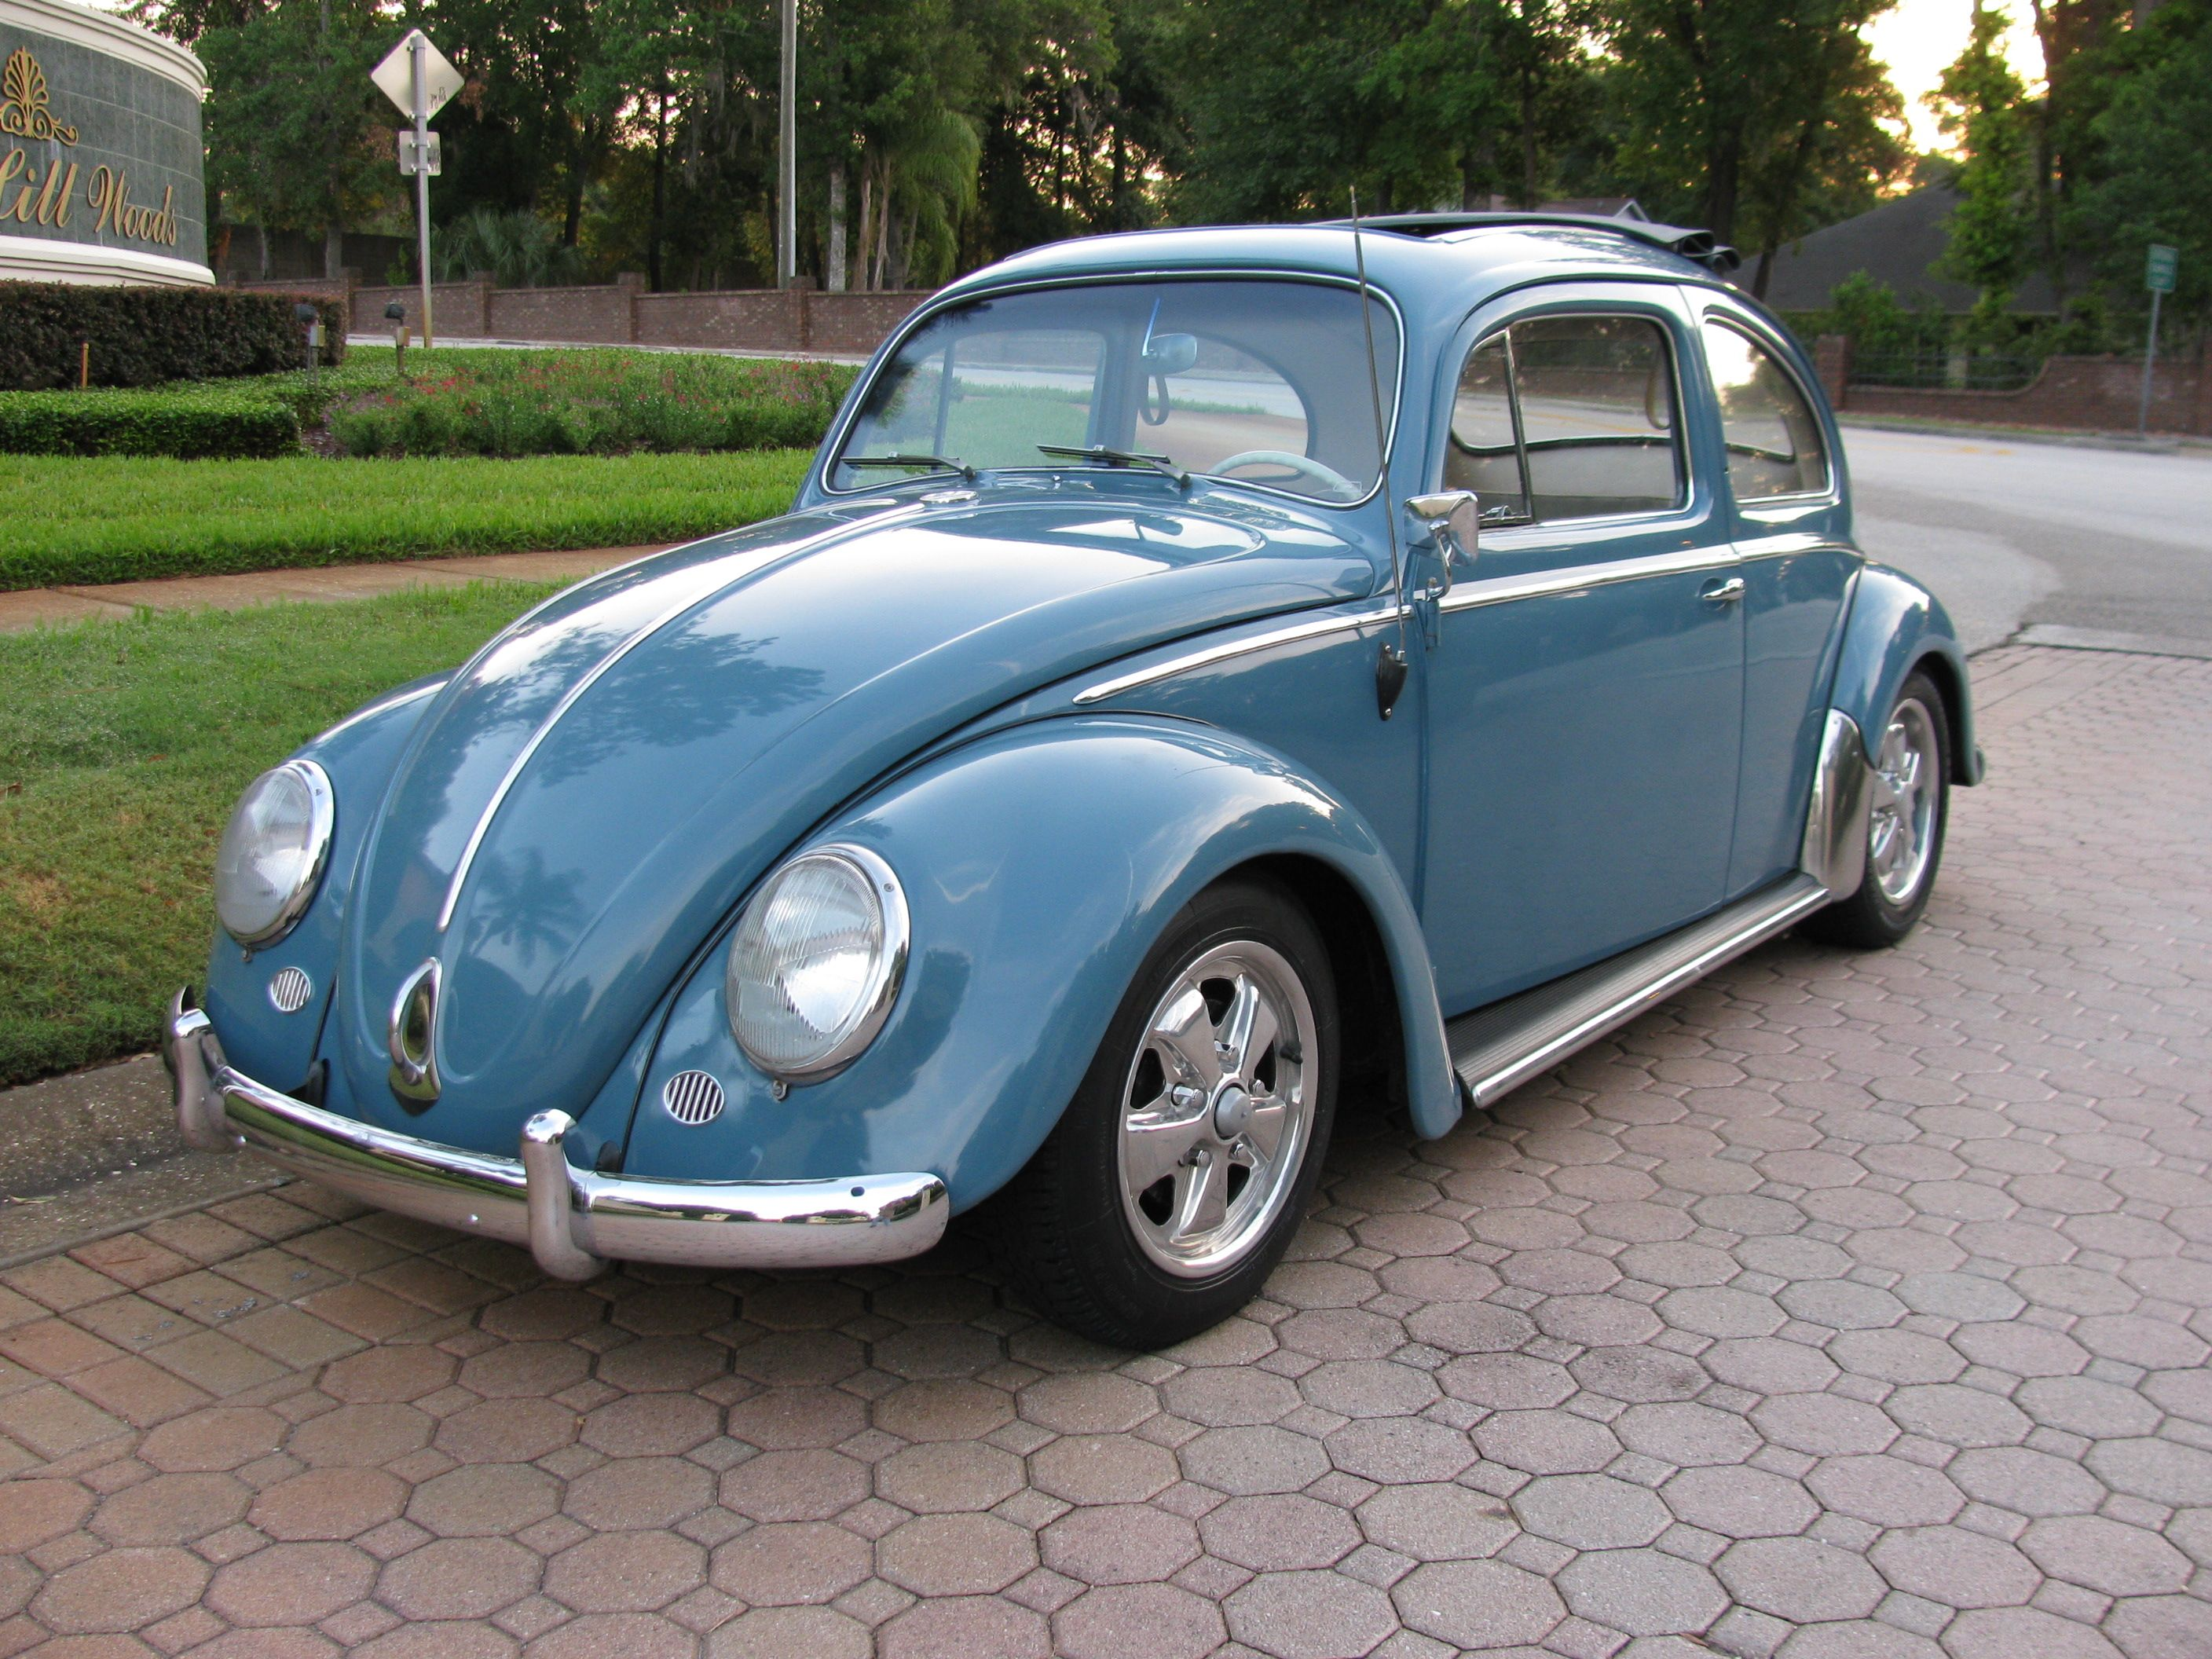 1958 vw bug ragtop 018 i want one like this but with the rack on a hardtop